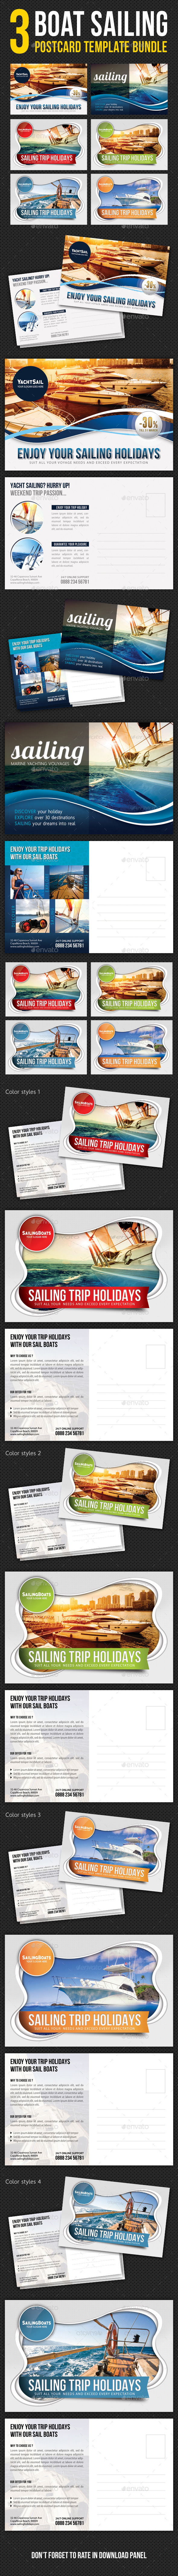 3 in 1 Boat Sailing Postcard Template Bundle - Cards & Invites Print Templates